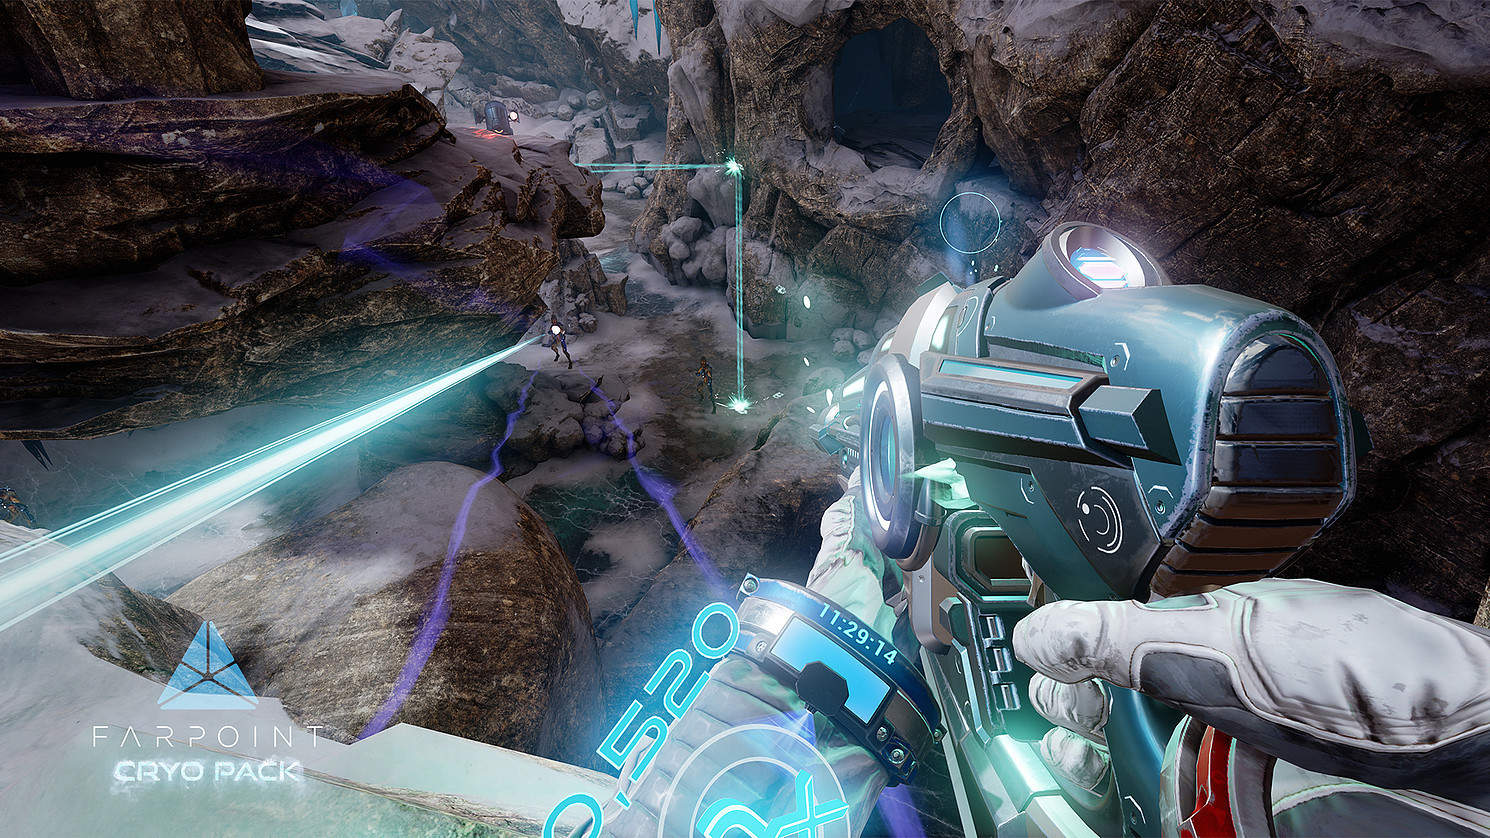 Farpoint-Cryo-Pack